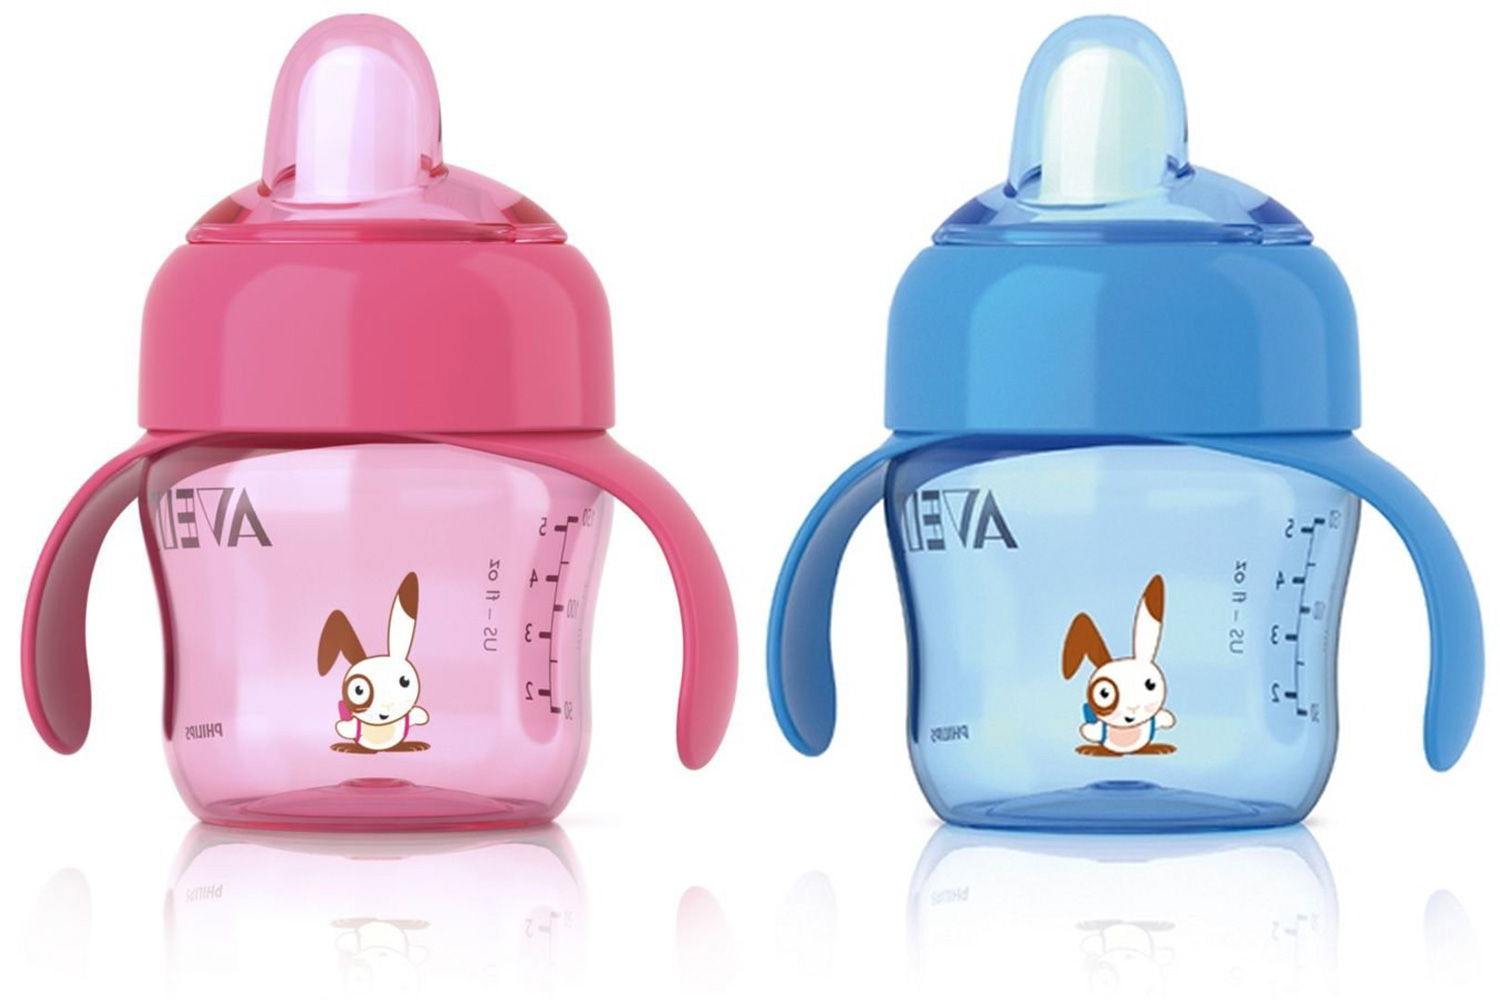 Avent Sippy Cup Tops : Avent spout cup ml m closing sippy baby feeding